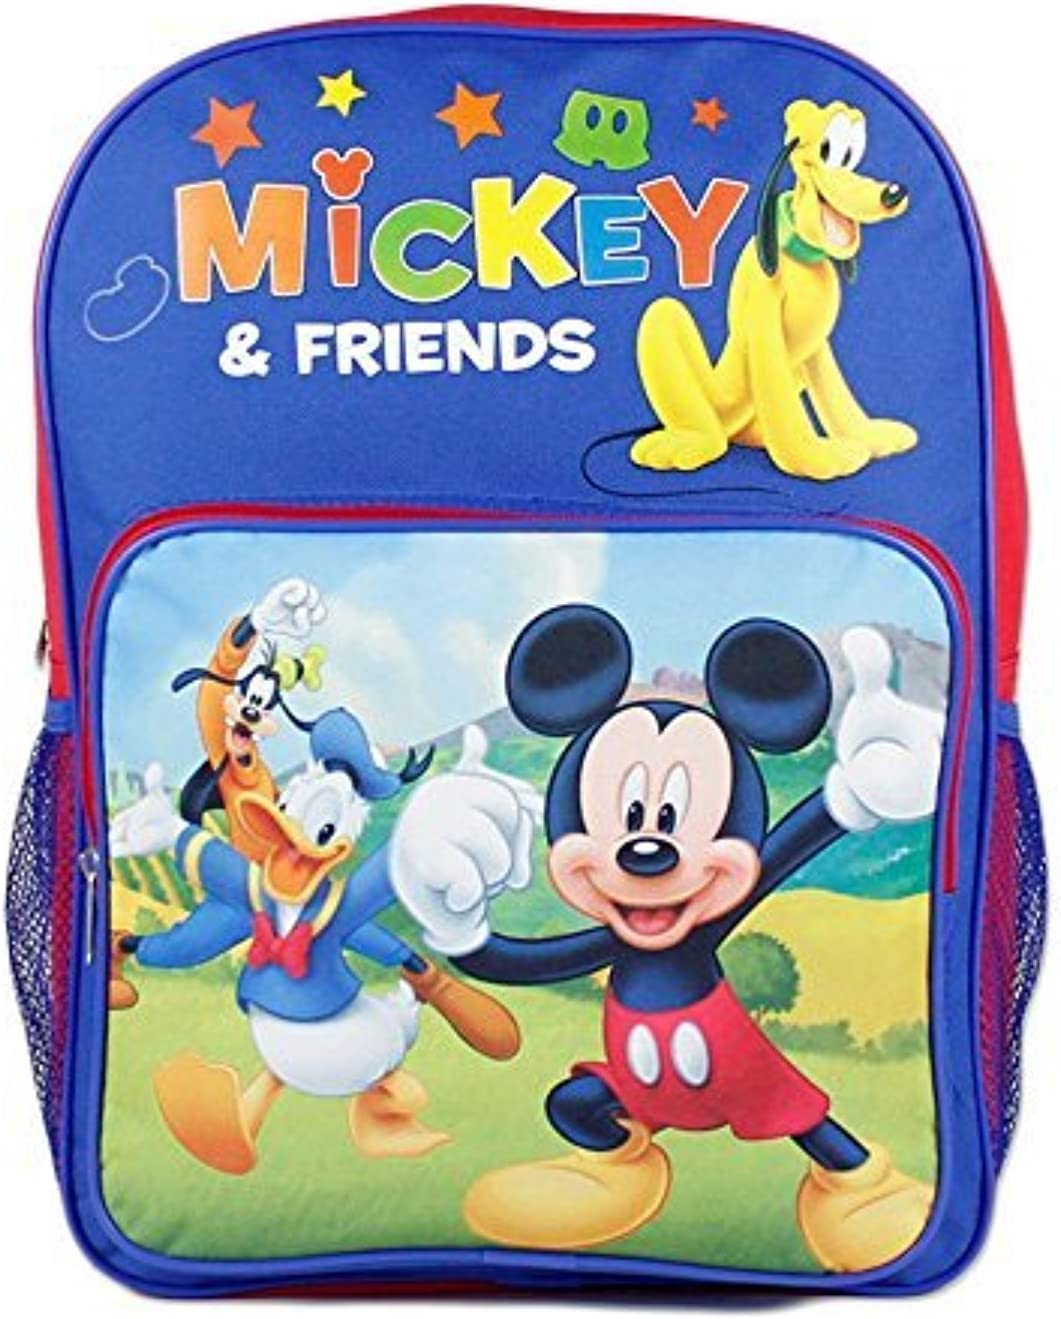 Disney Minnie Mouse Pretty Things 63547 12 inch Backpack